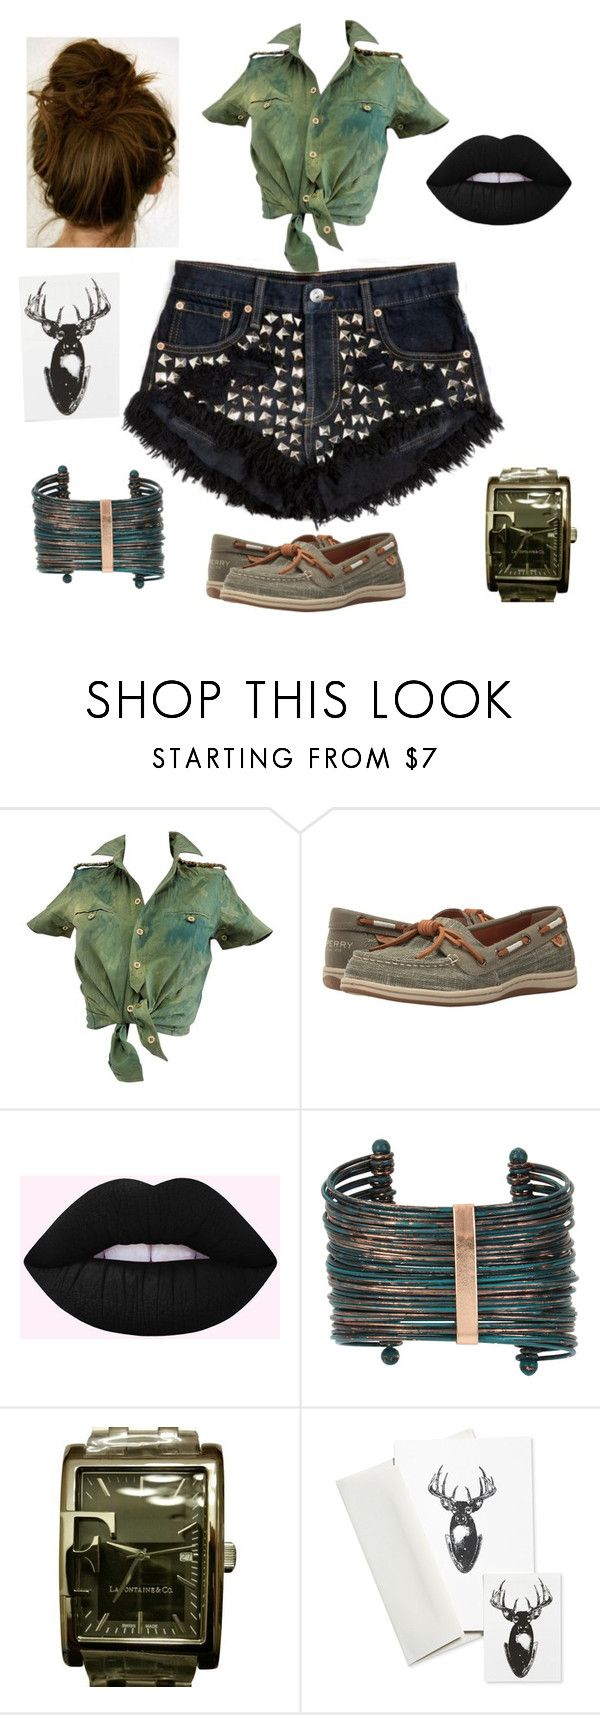 """""""Untitled #438"""" by yasm-ina ❤ liked on Polyvore featuring Balenciaga, Sperry, Boutique+, La Fontaine & Co. and Tattly"""